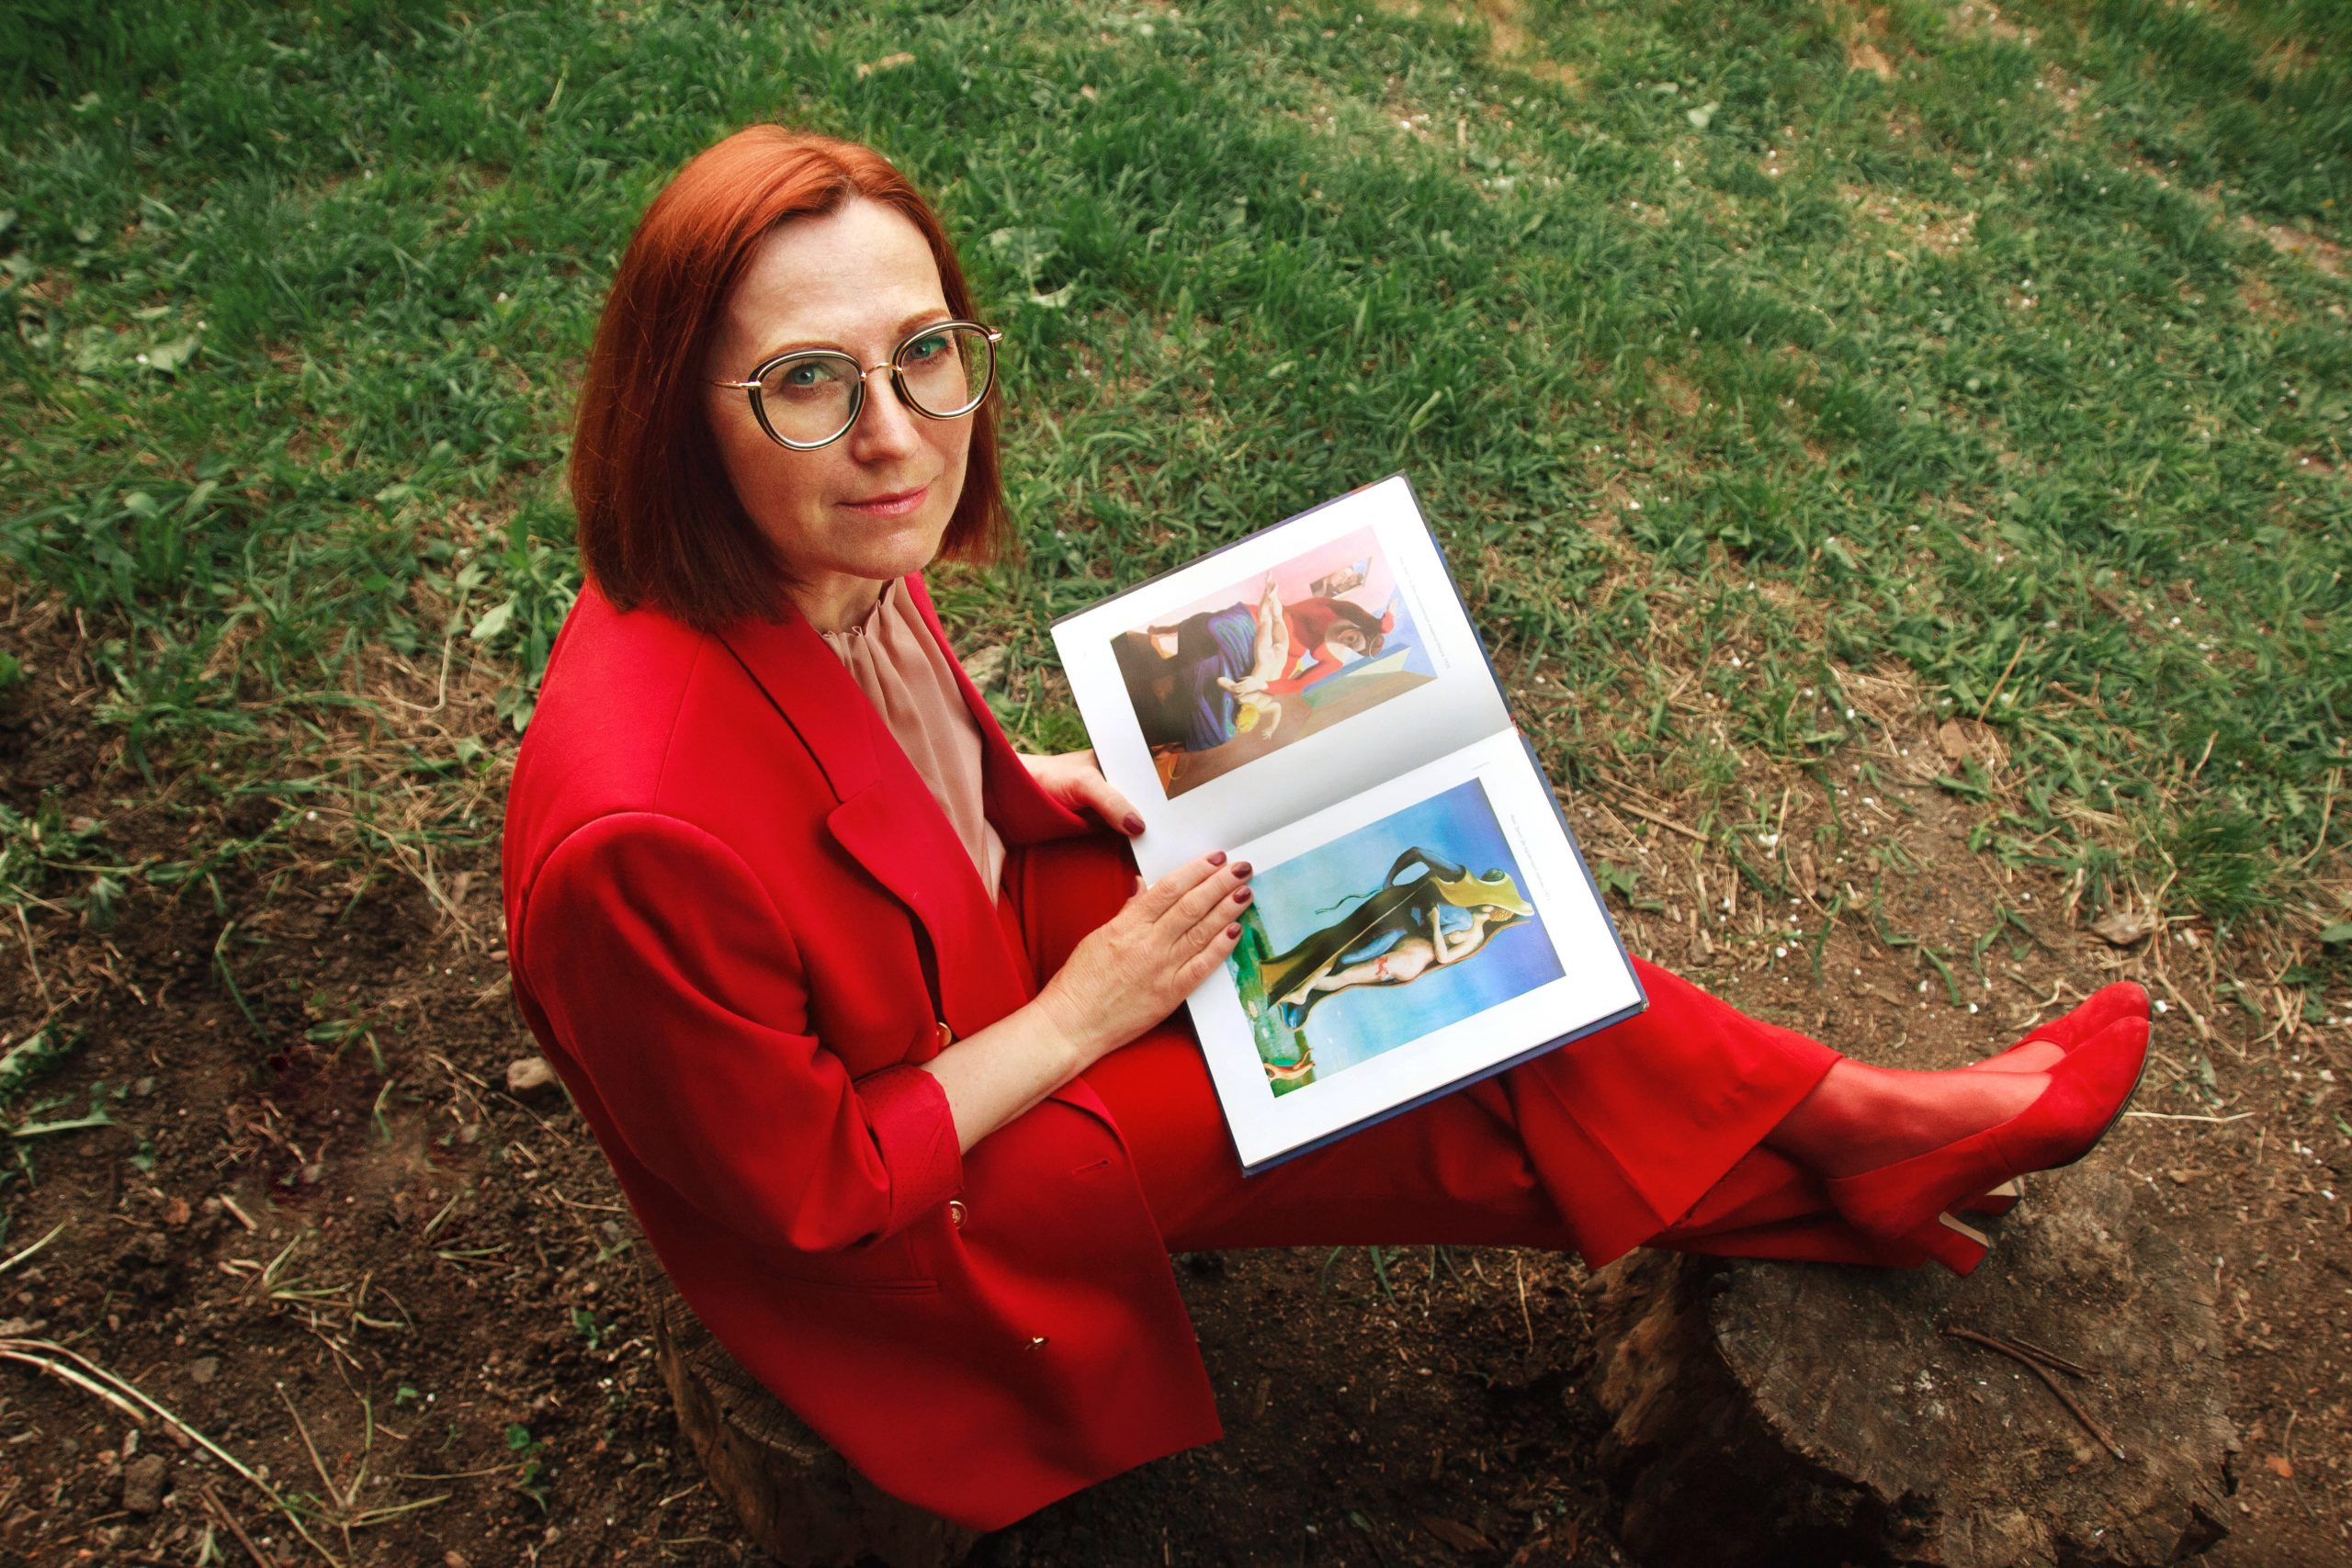 An elegant aging woman in her mid-50s wearing a red pant suit and sitting in her courtyard. Middle-aged woman holding an illustrated book about fine art.